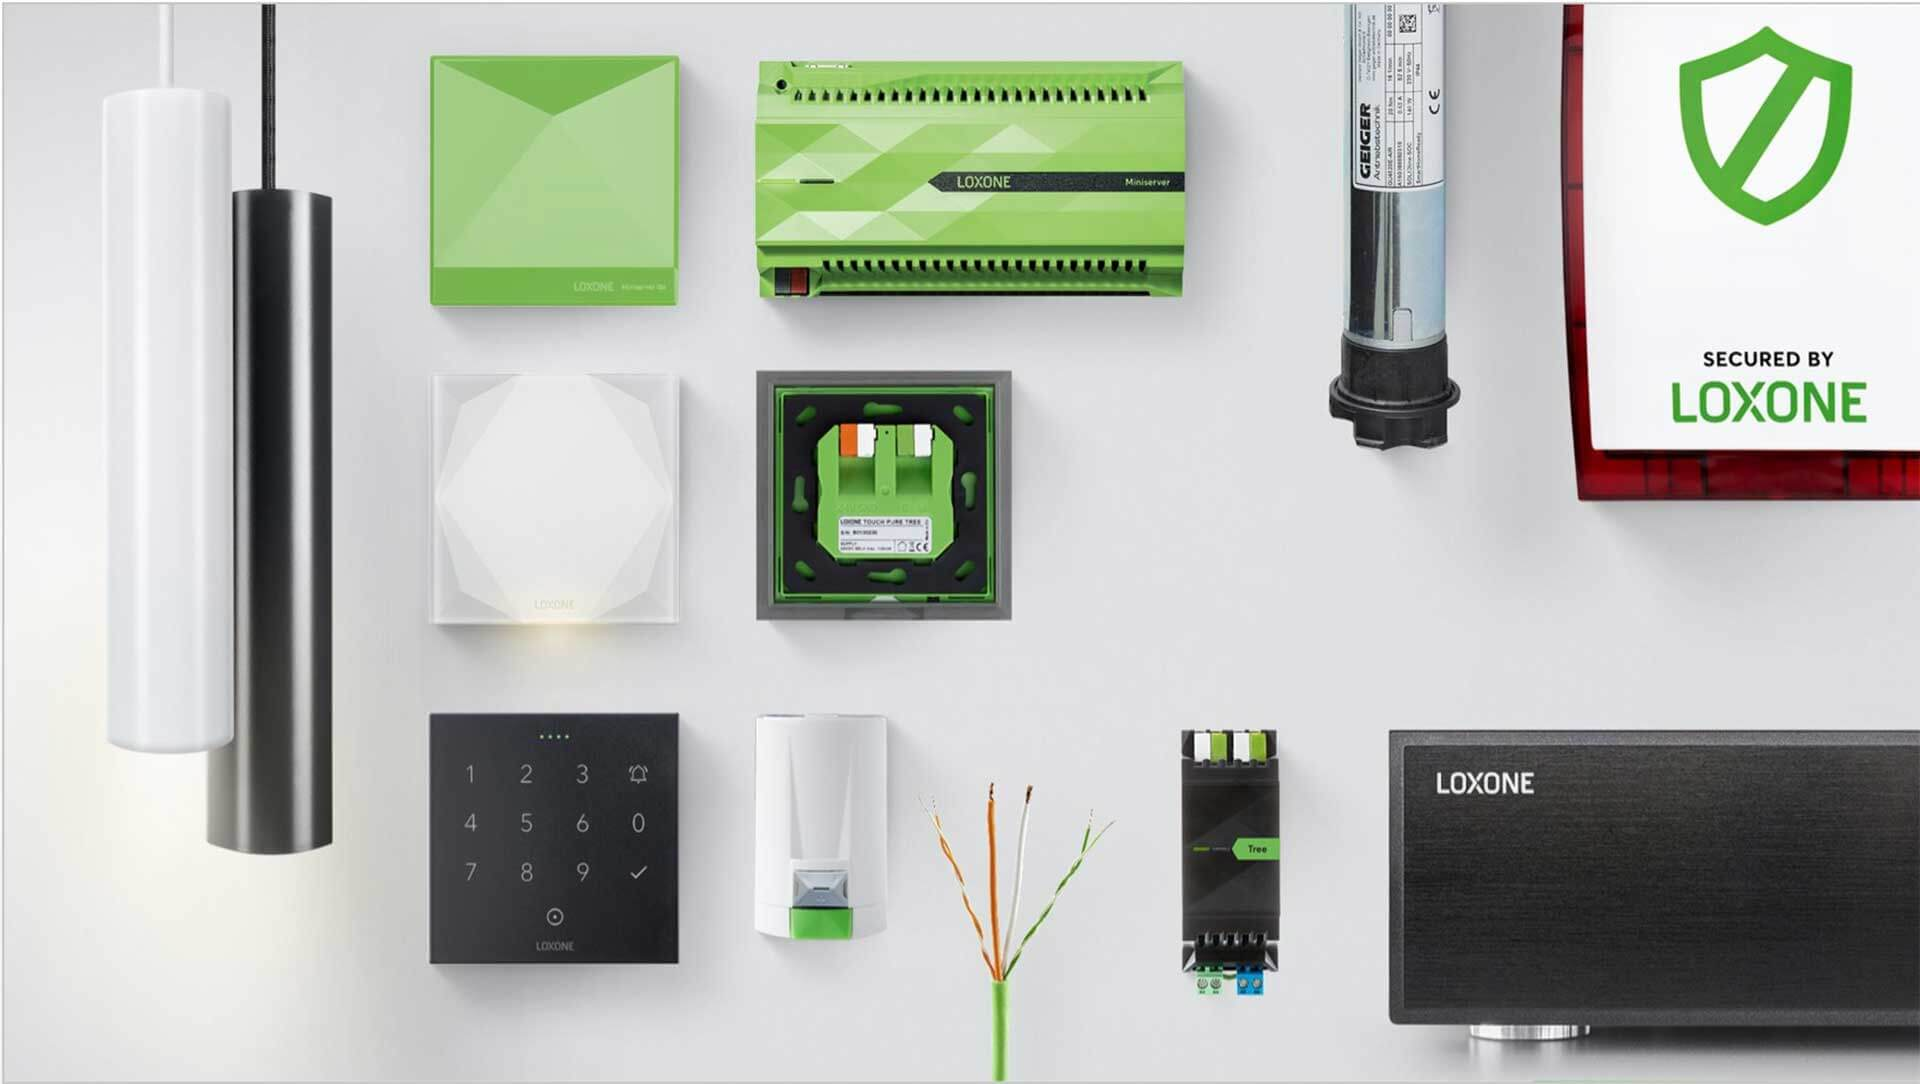 Aesthetic arrangement of Loxone products